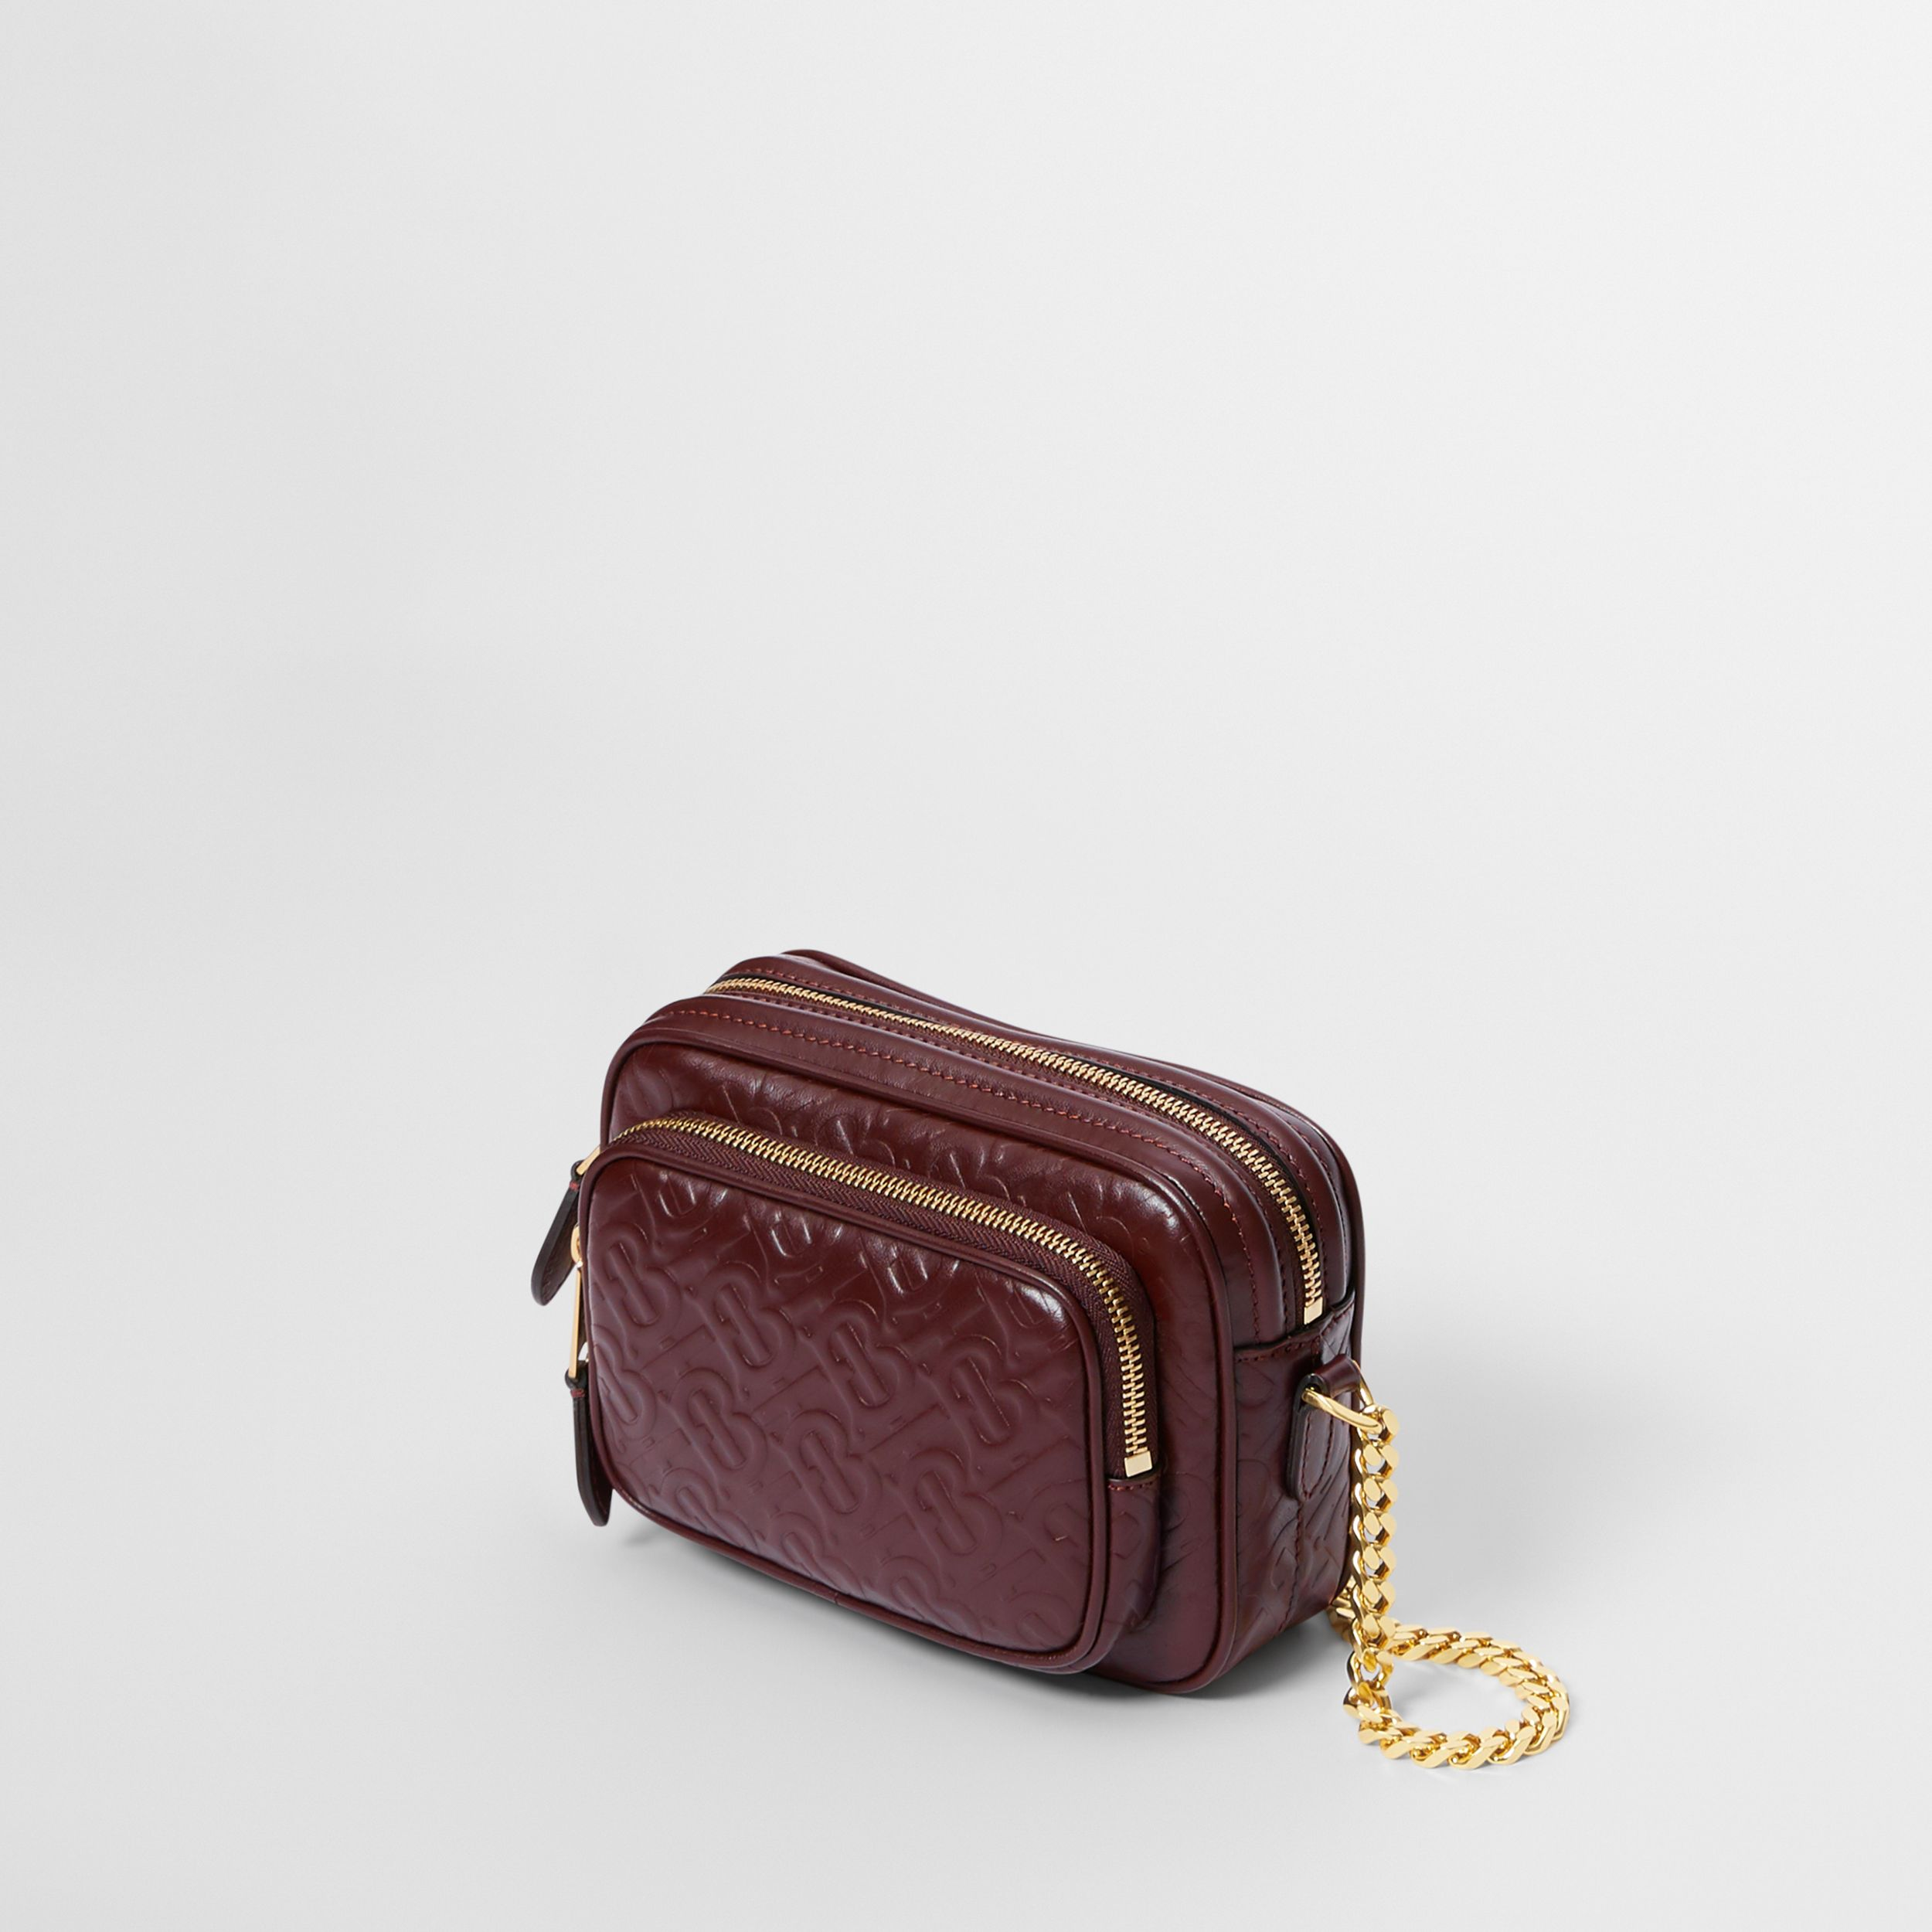 Monogram Leather Camera Bag in Dark Burgundy - Women | Burberry - 4